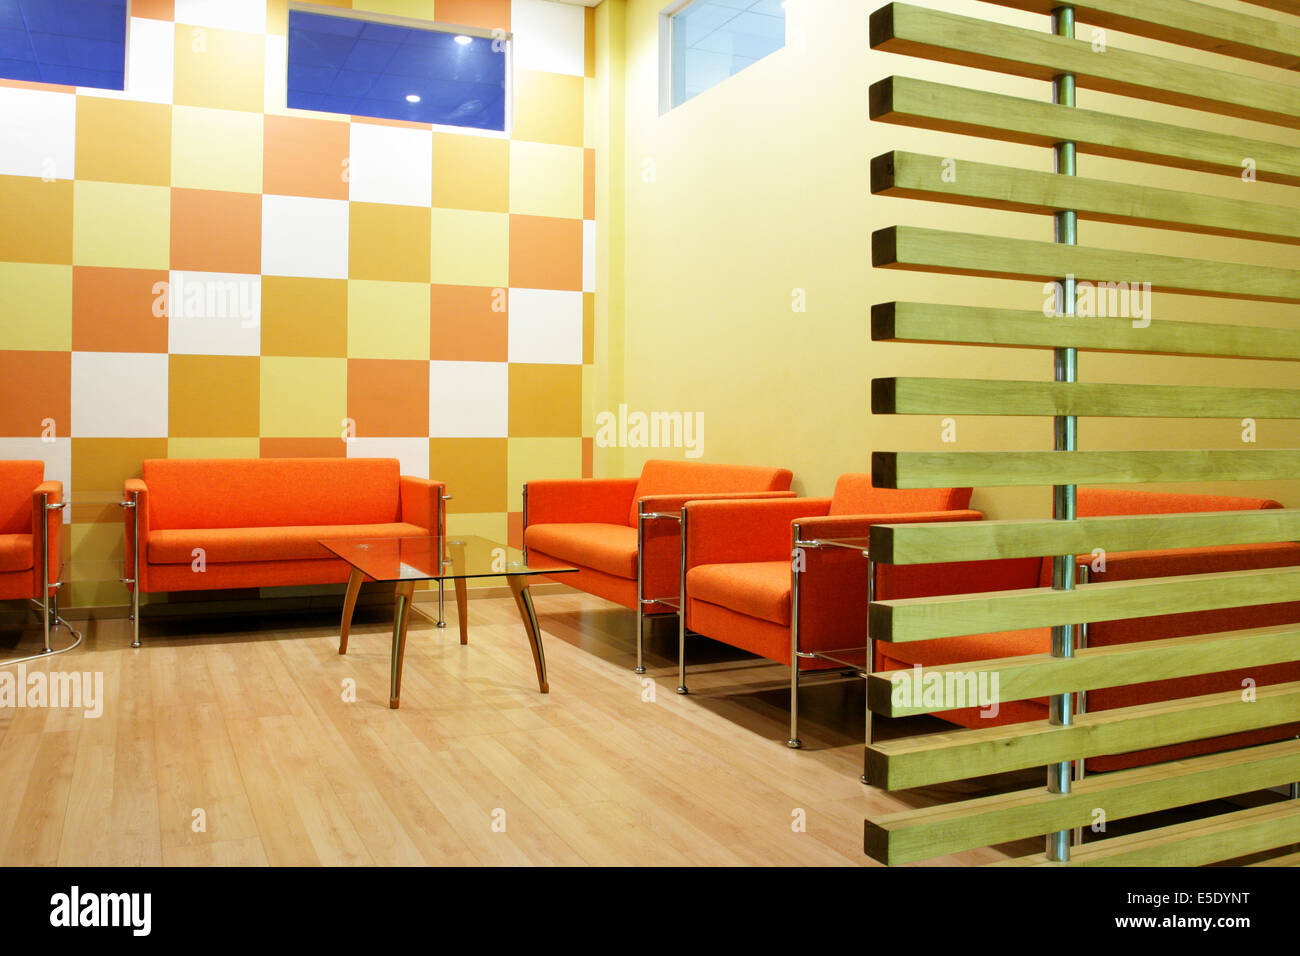 Moderm interior of a waiting room - Stock Image